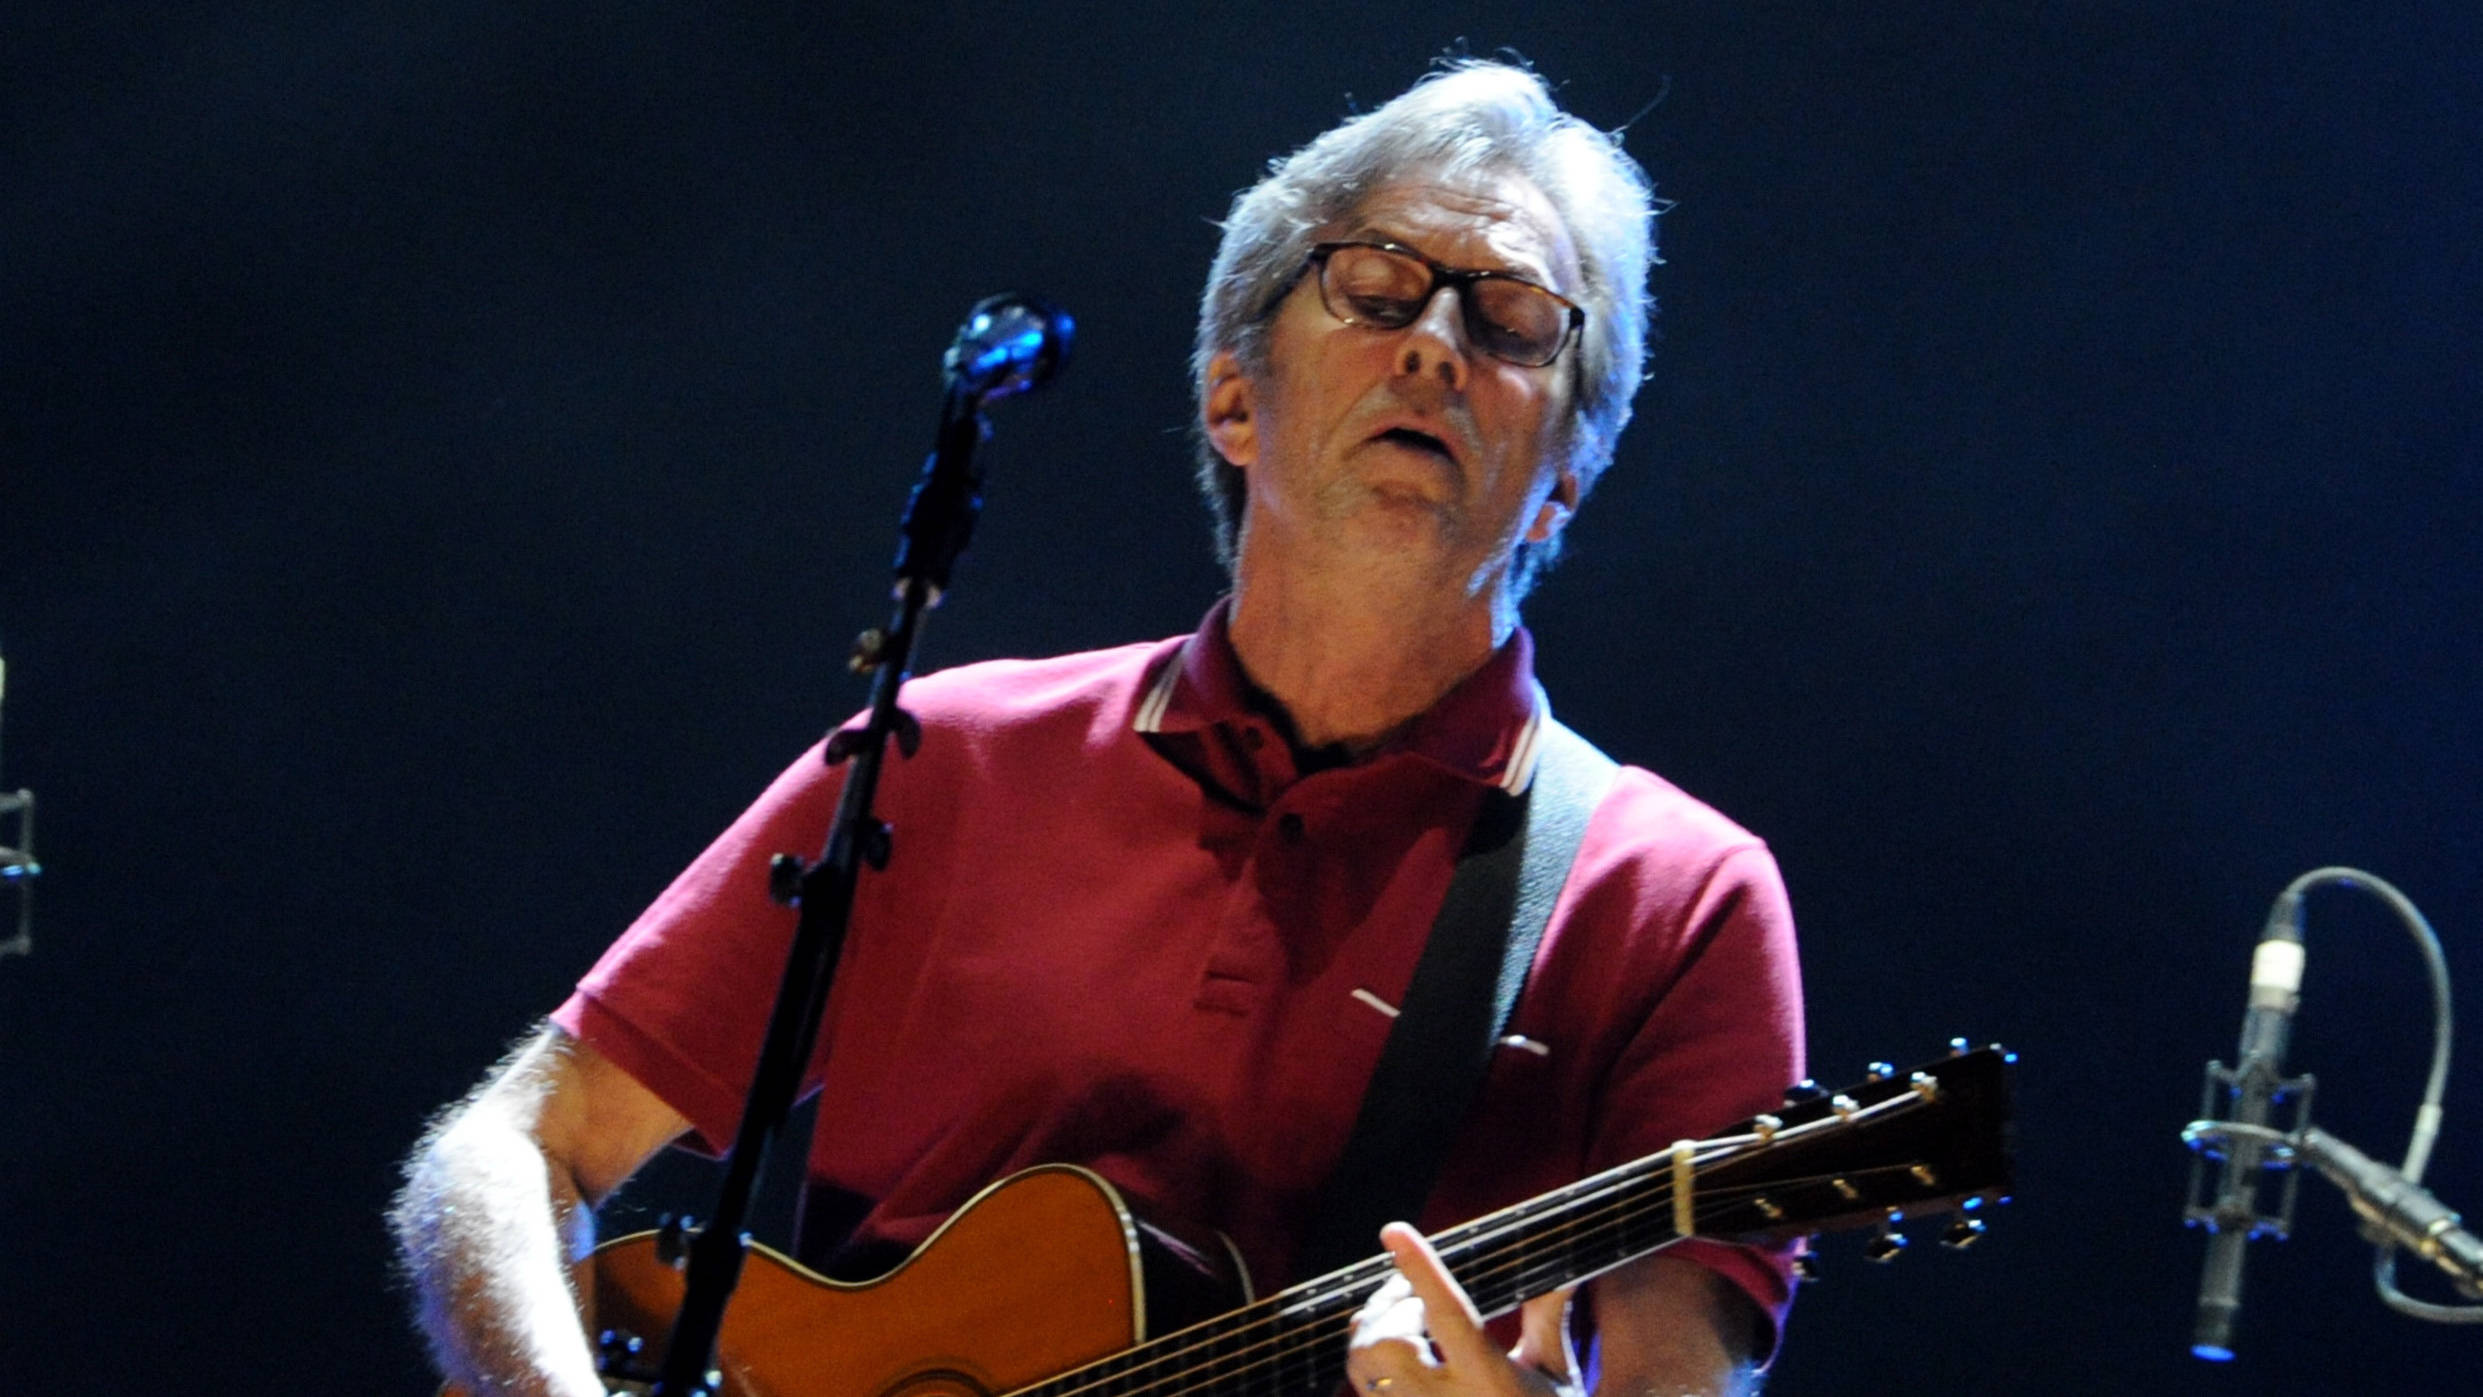 Eric Clapton facts: Who is his wife, how many children does